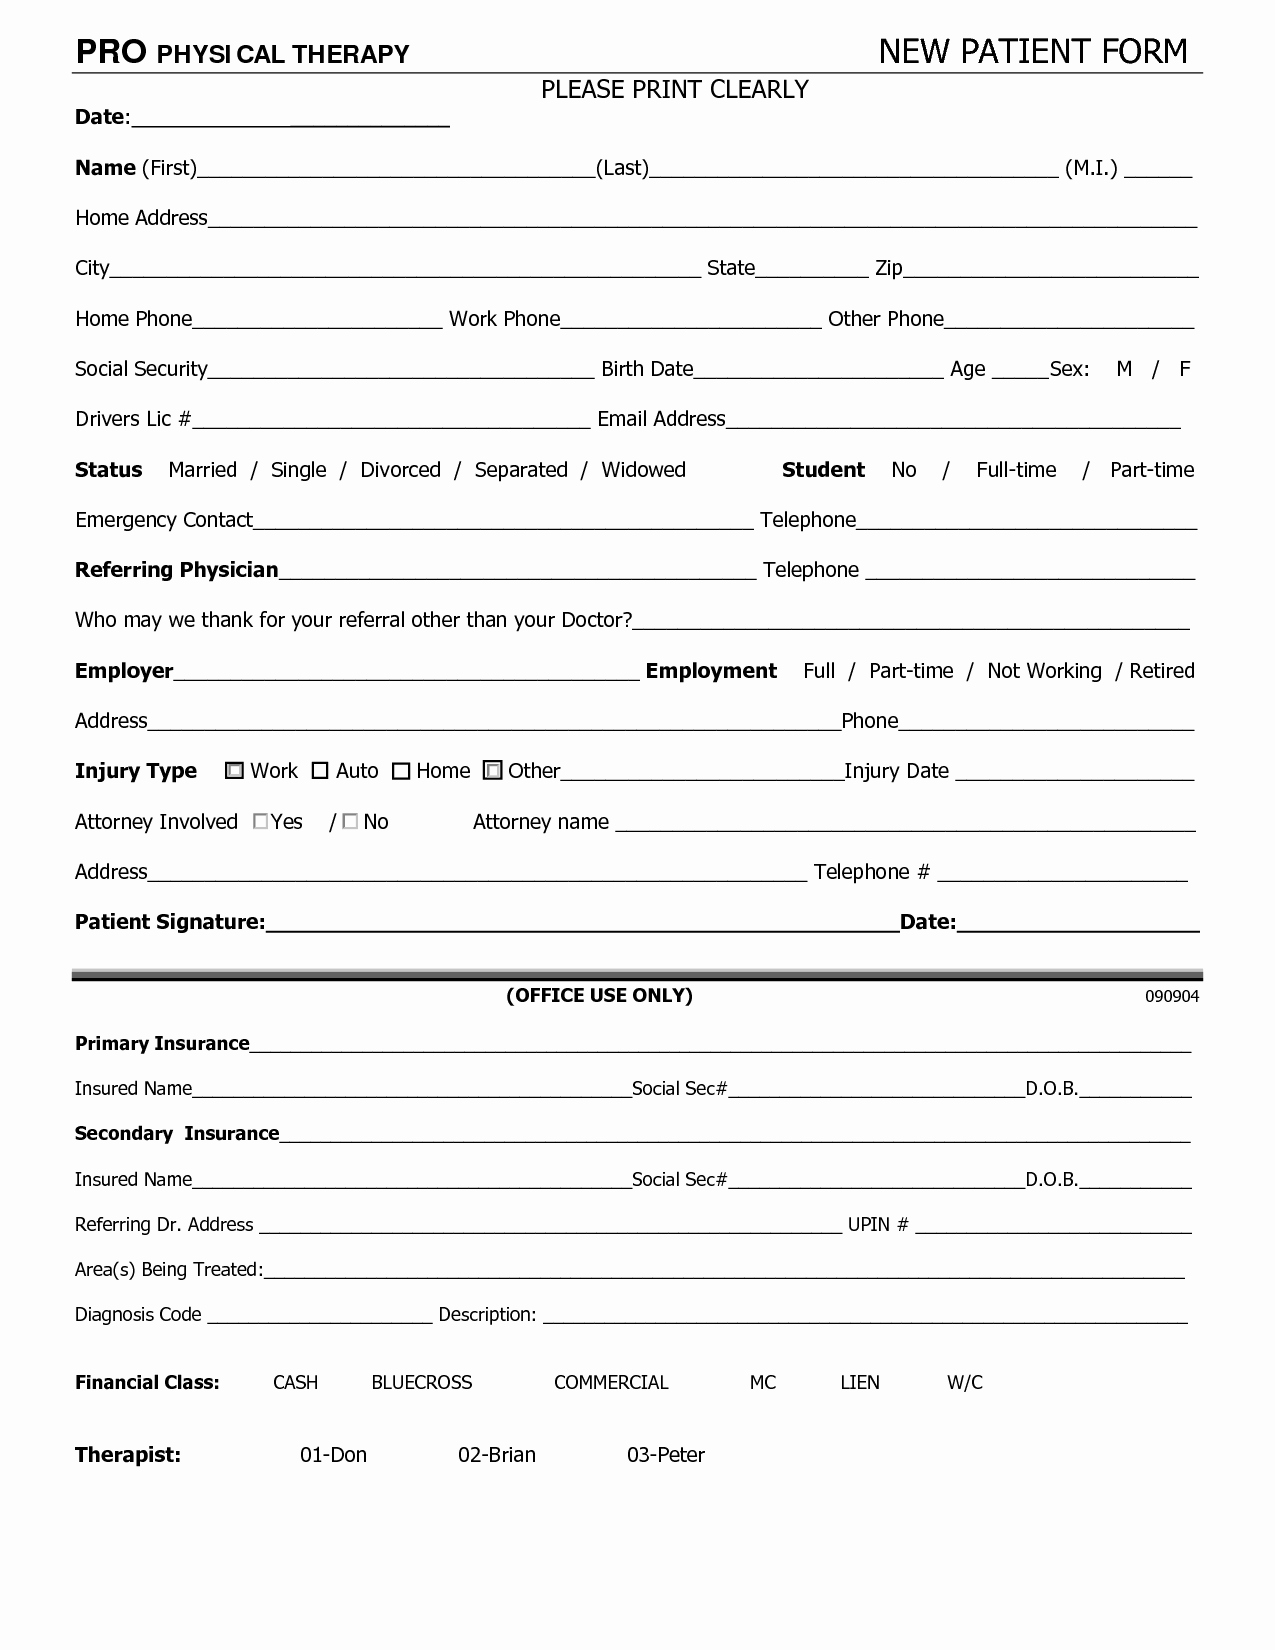 General Physical form for Employment Best Of Work Physical Exam Blank form Bing Images